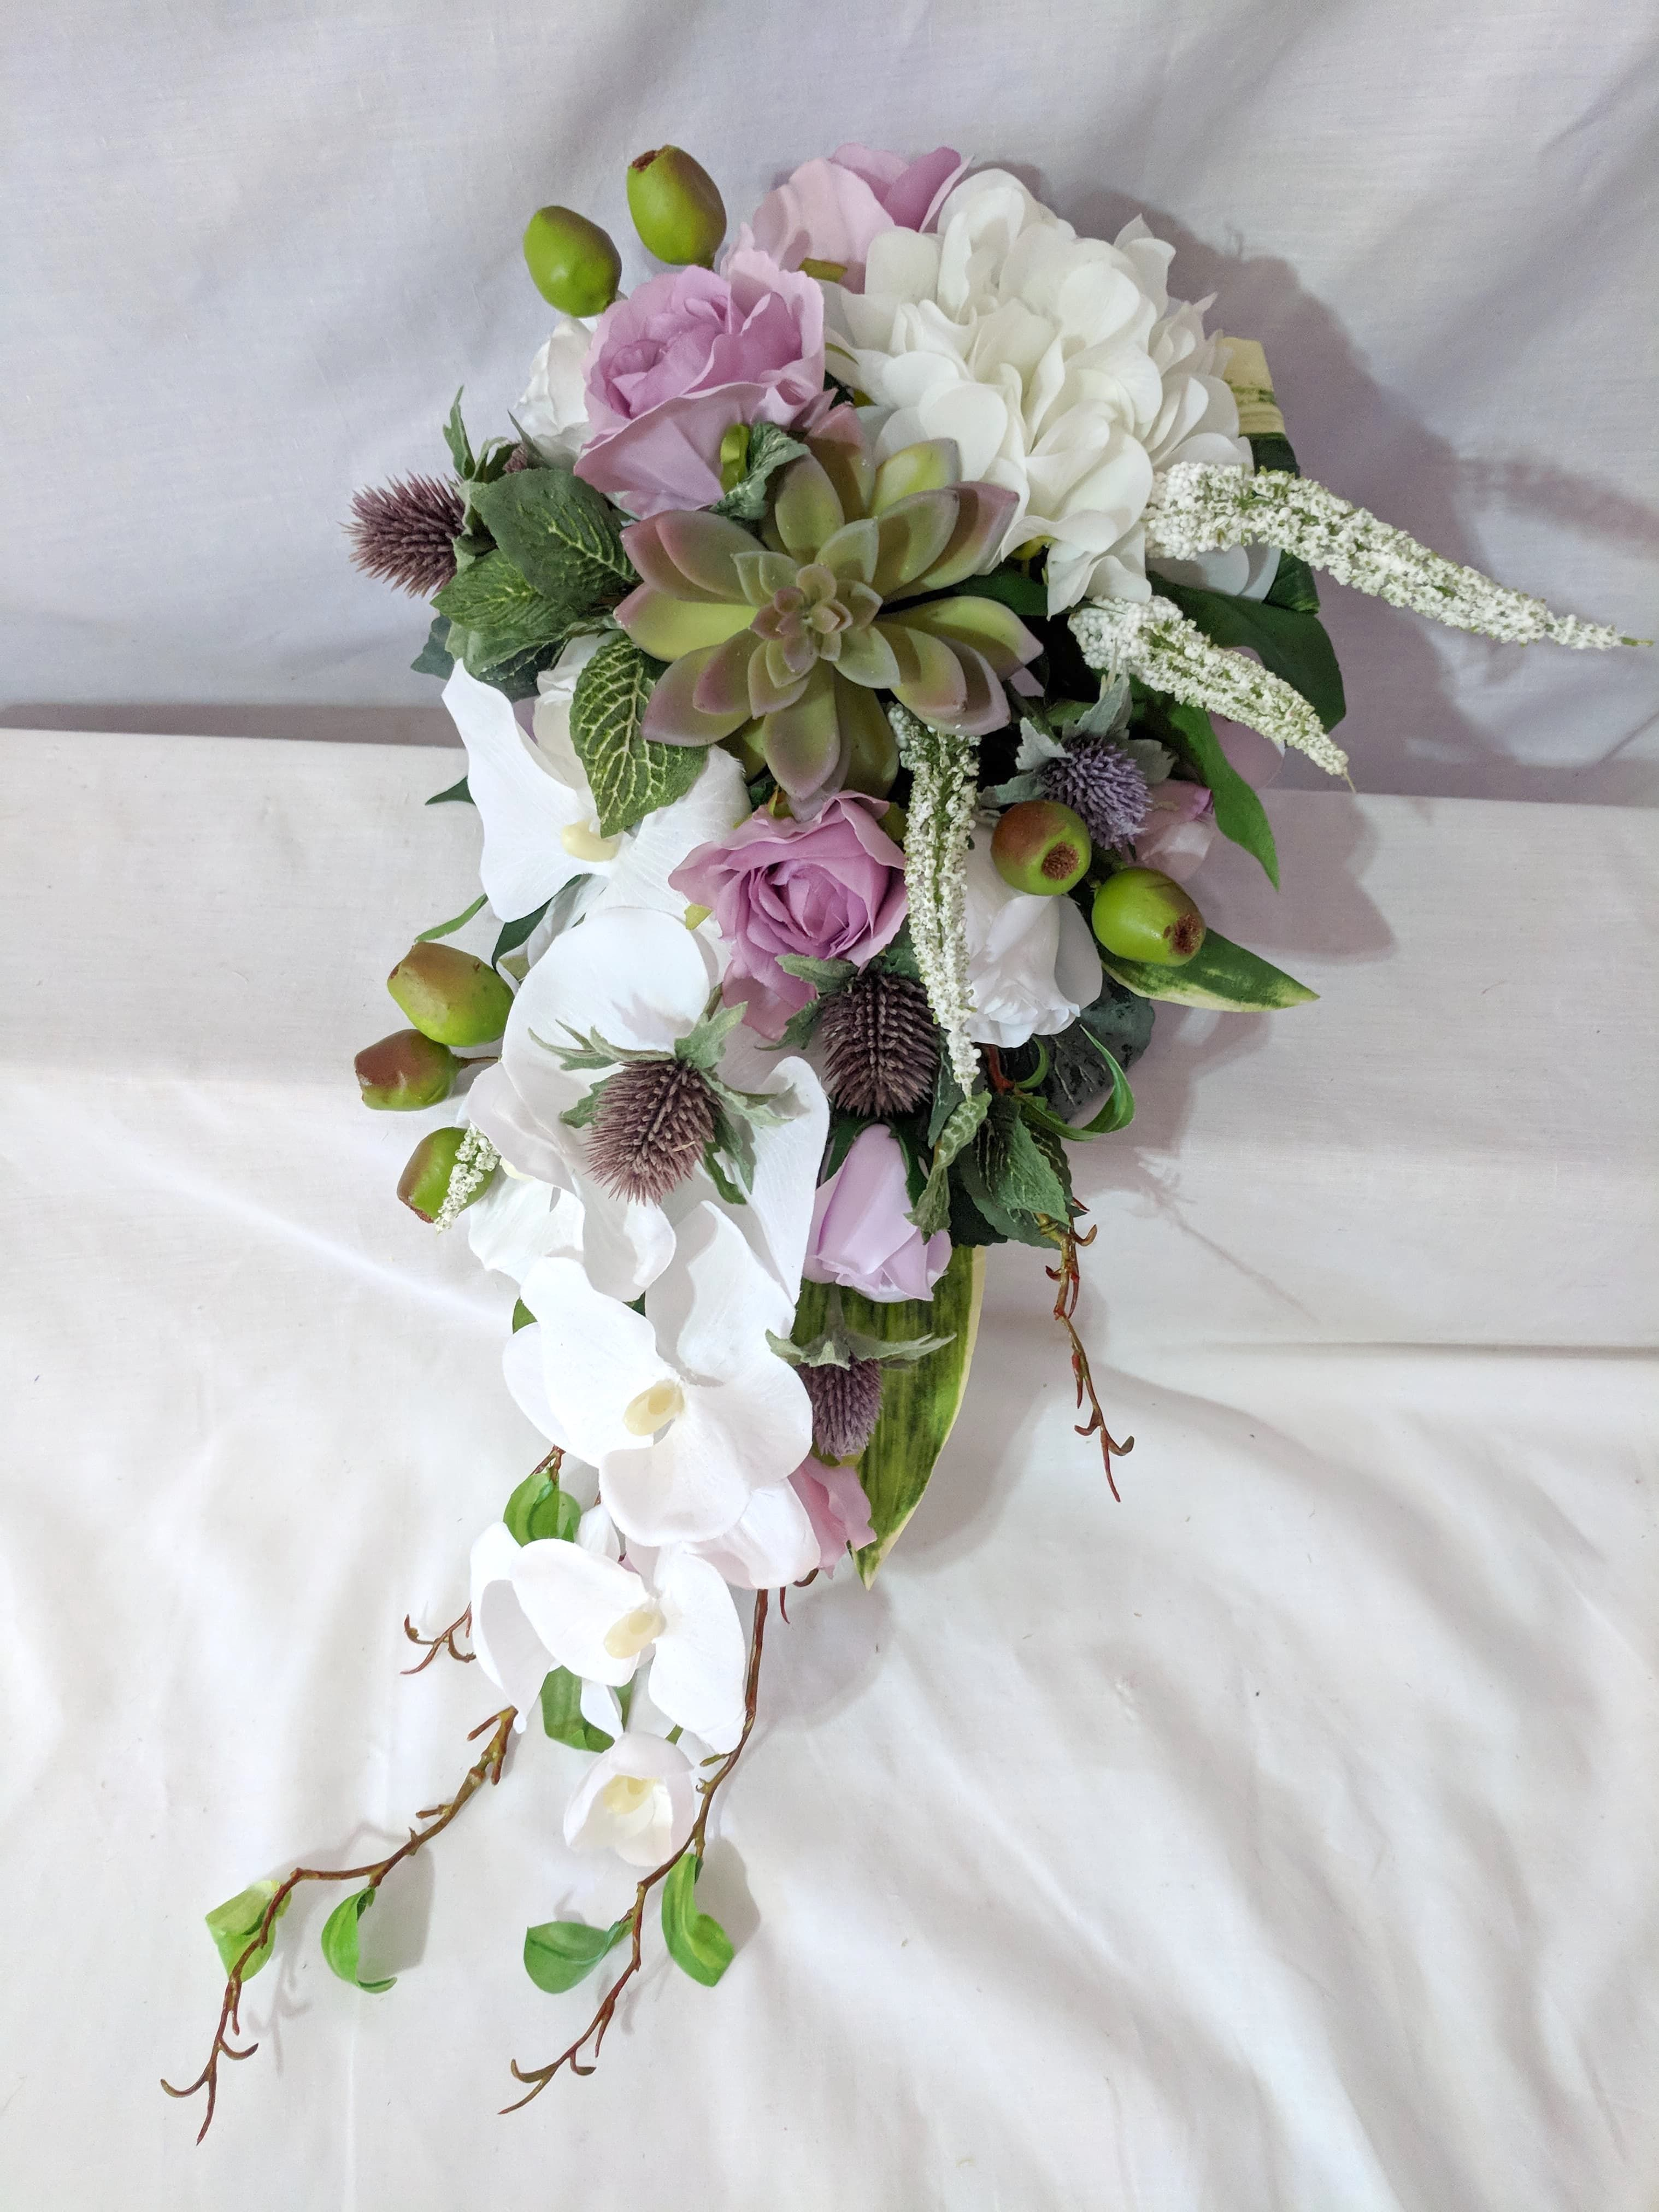 Silk white phal orchids and hydrangea, lavender roses